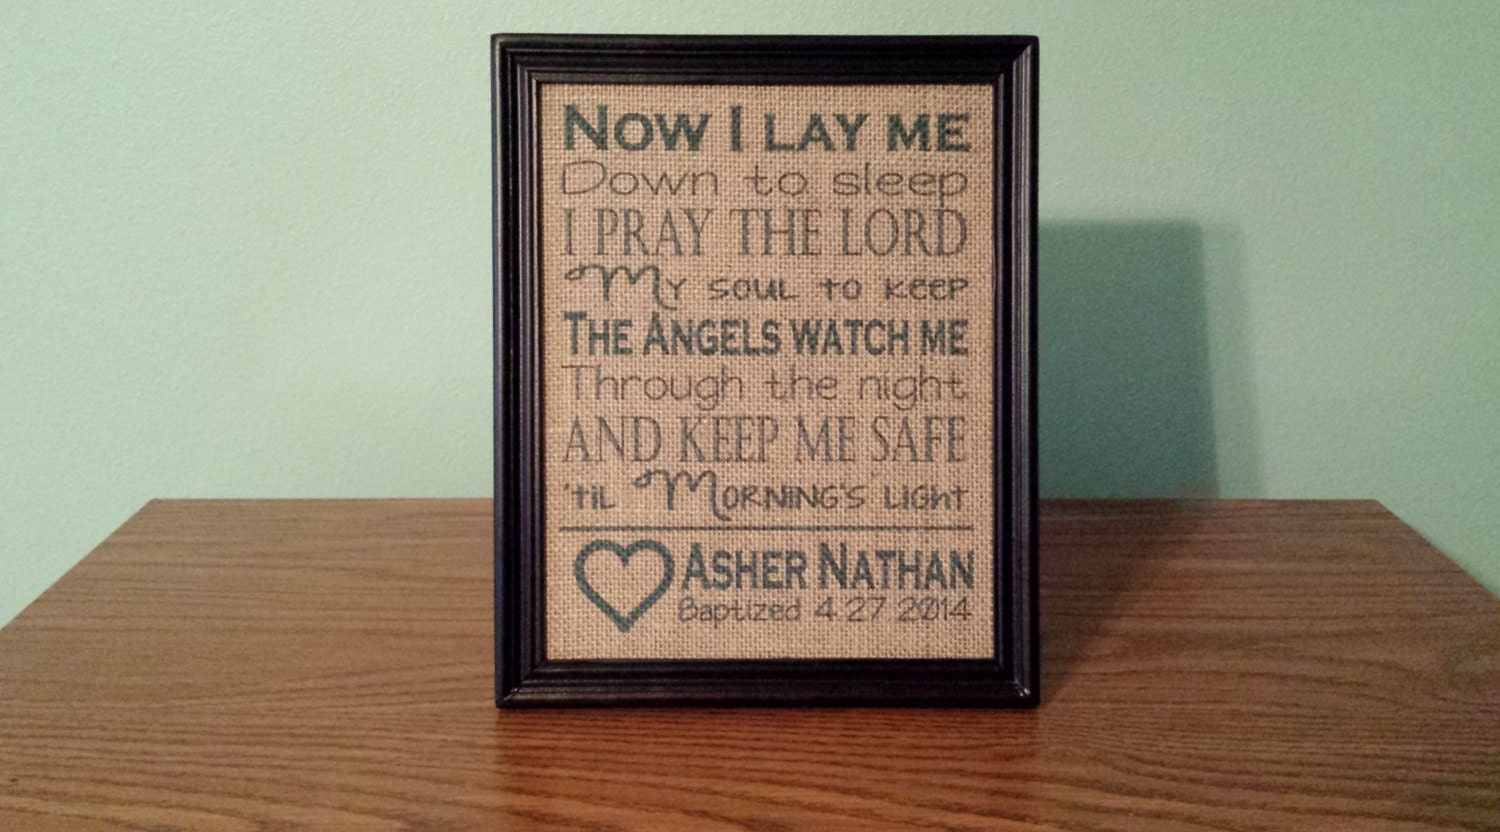 framed burlap print baptism frame gift for child childs prayer dedication christening now i lay me down to sleep 8x10